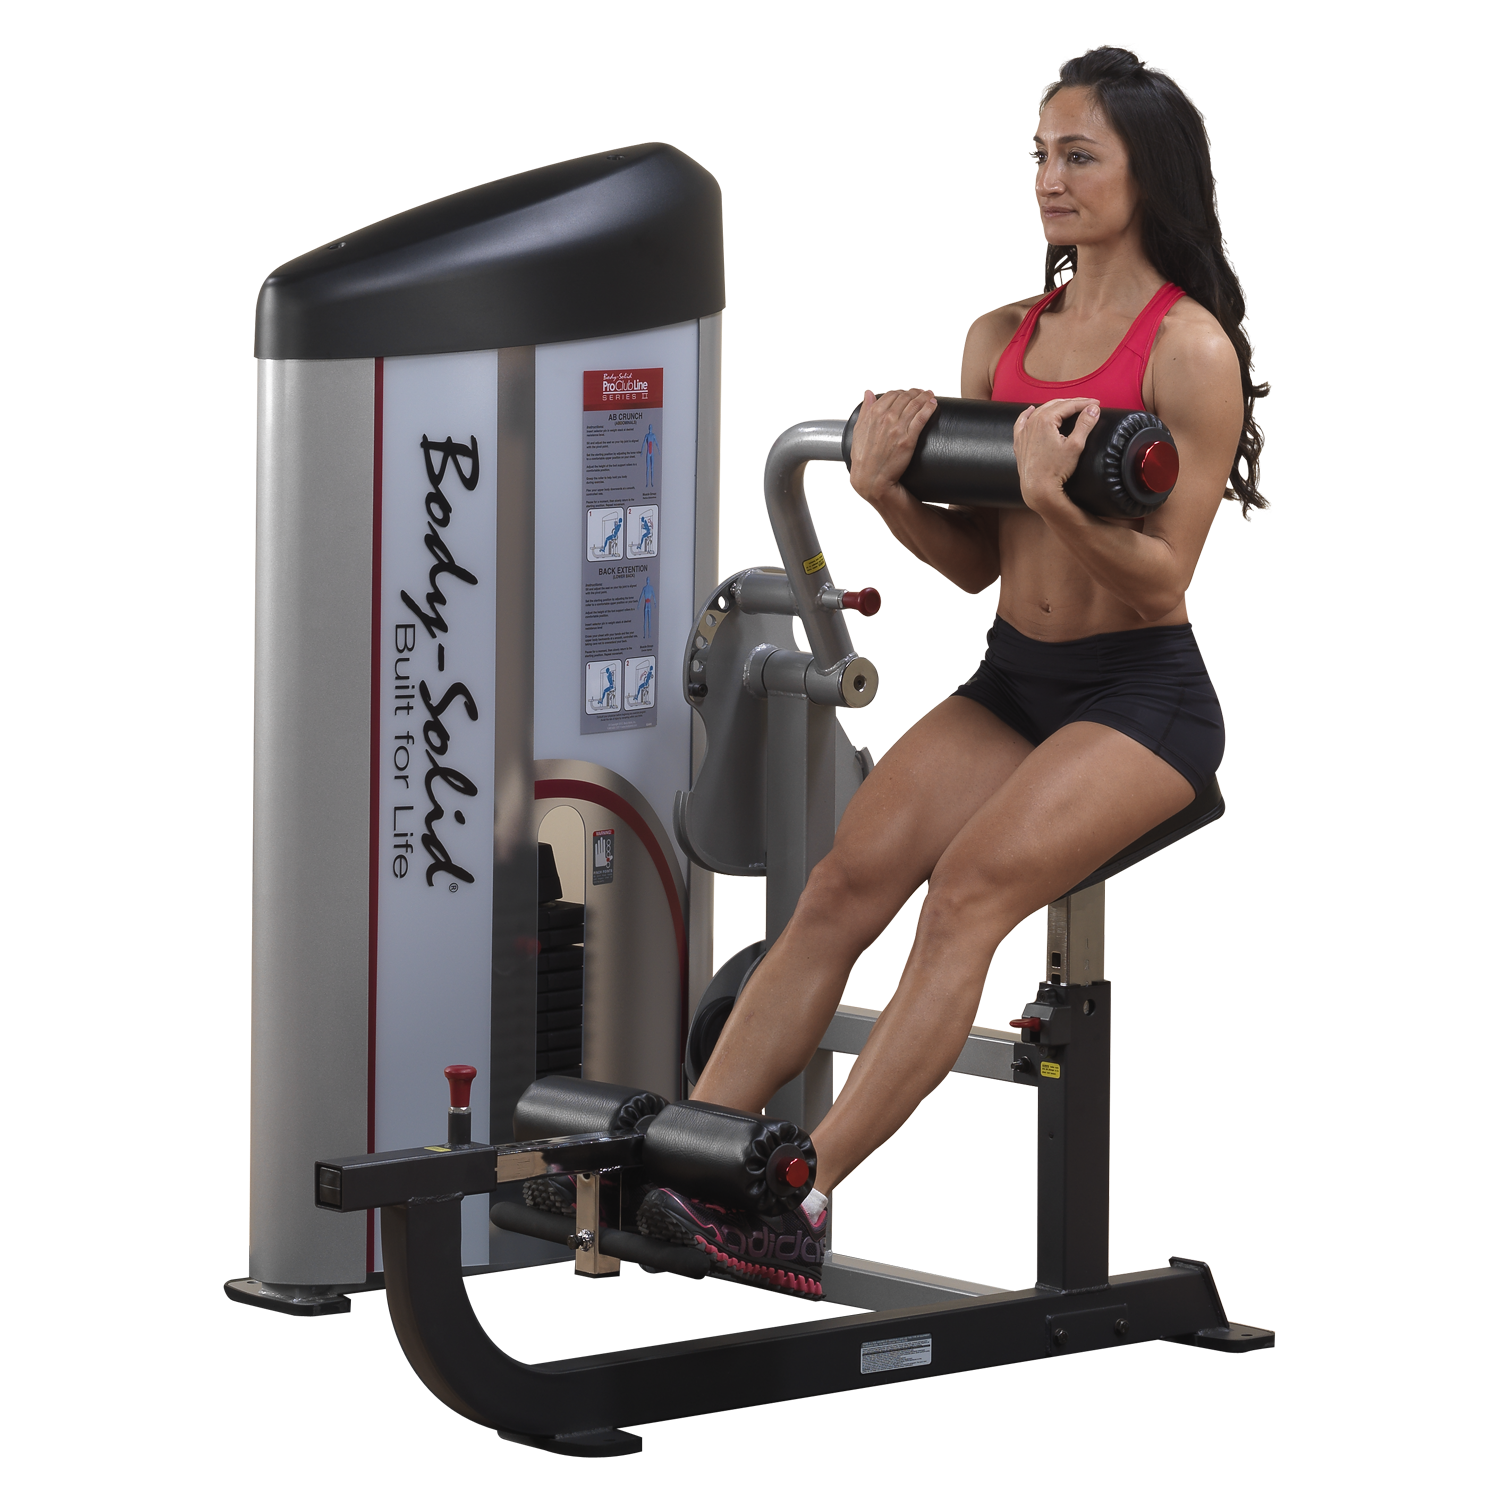 Body-Solid Pro Clubline Series II Ab and Back Machine